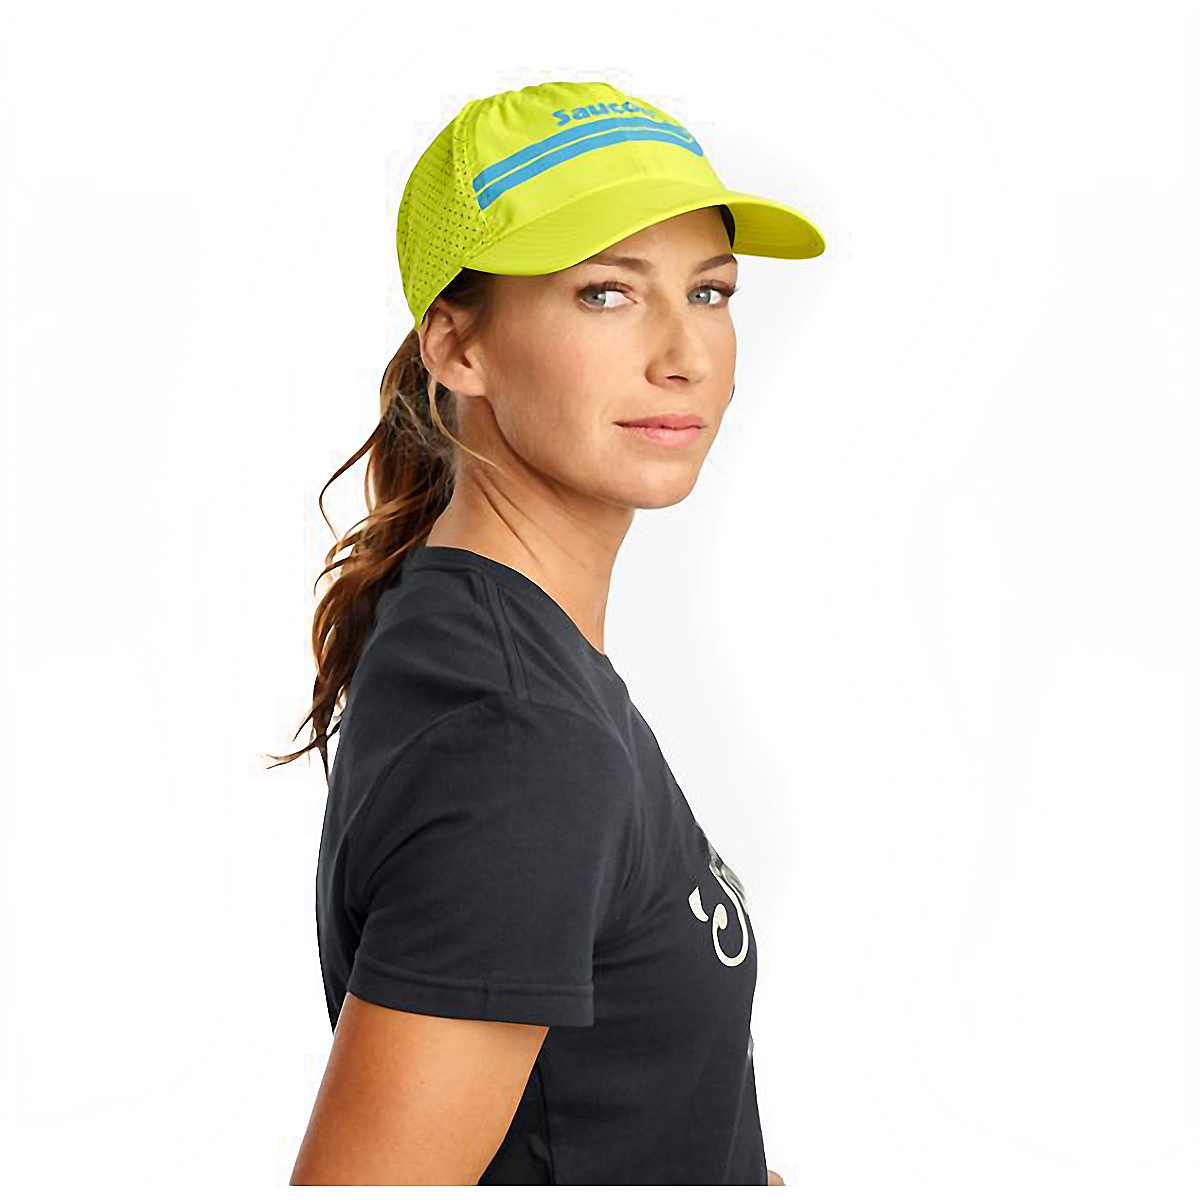 Saucony Doubleback Hat - Color: Evening Primrose, Evening Primrose, large, image 1